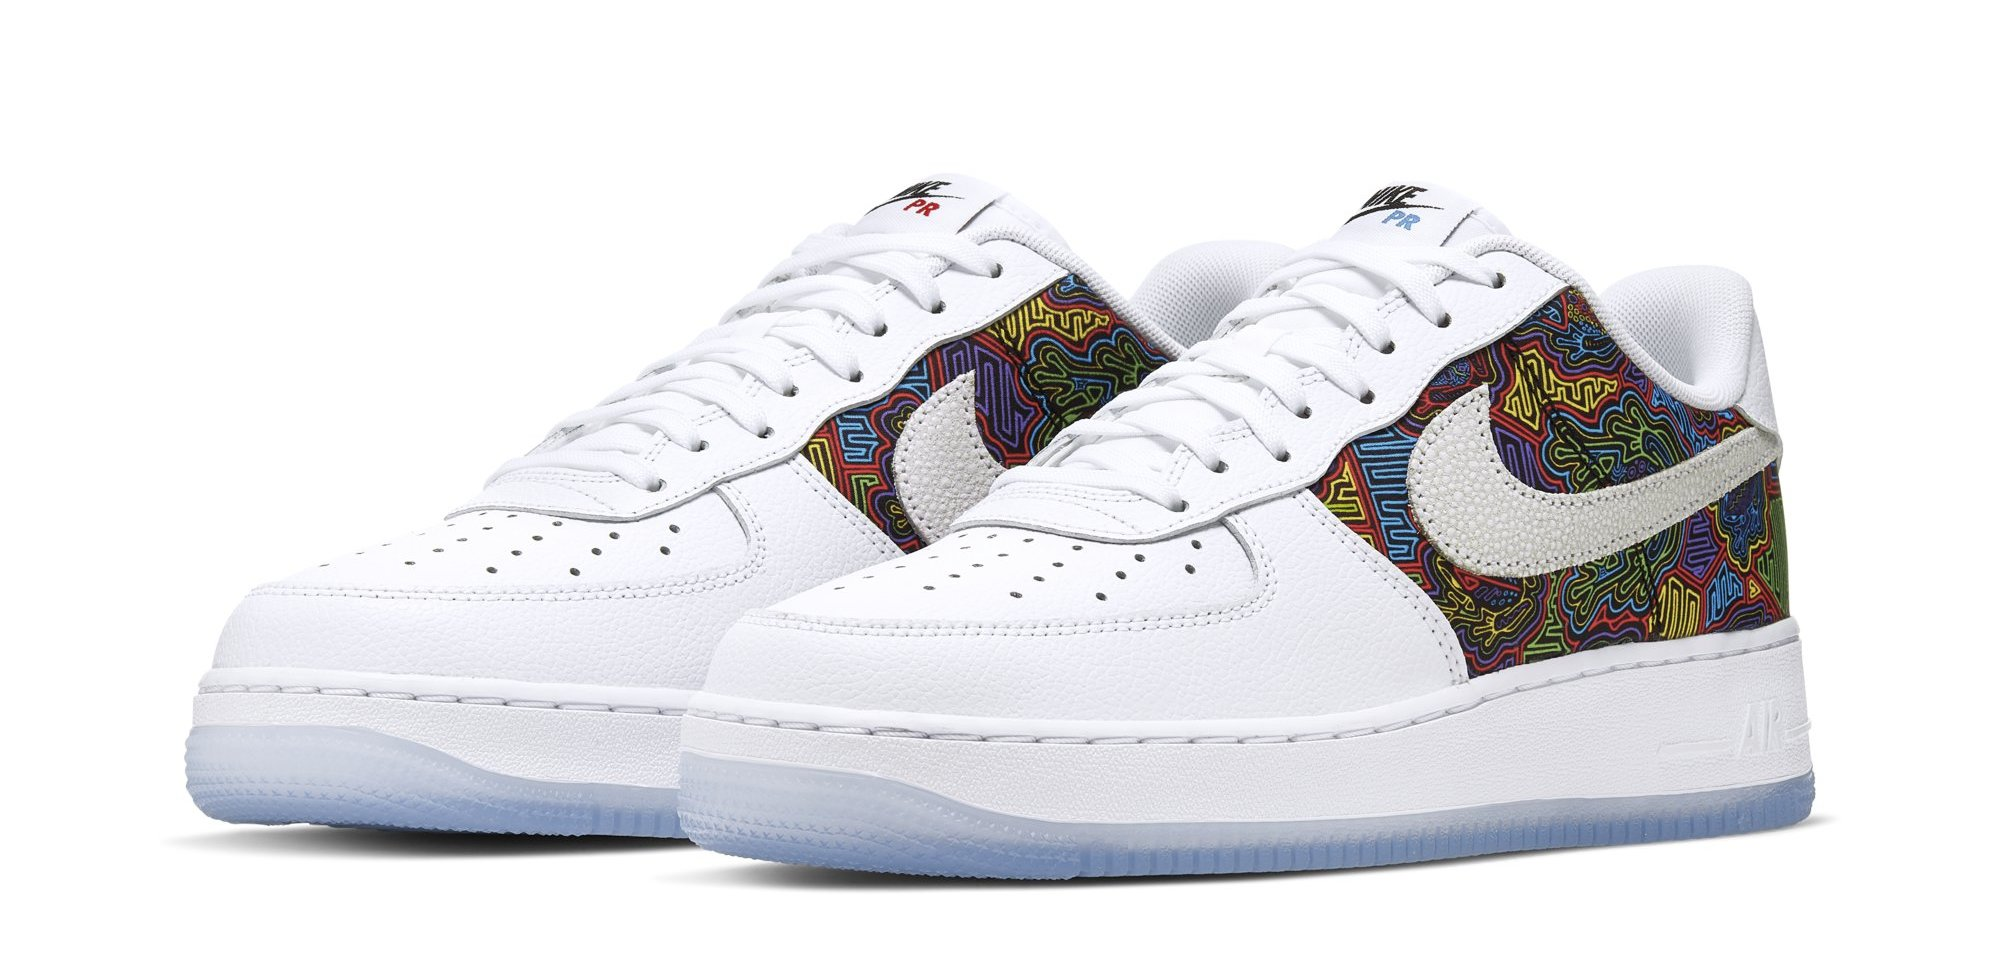 95cb165f92 Nike Has Officially Canceled the 'Puerto Rico' Air Force 1 | Sole Collector